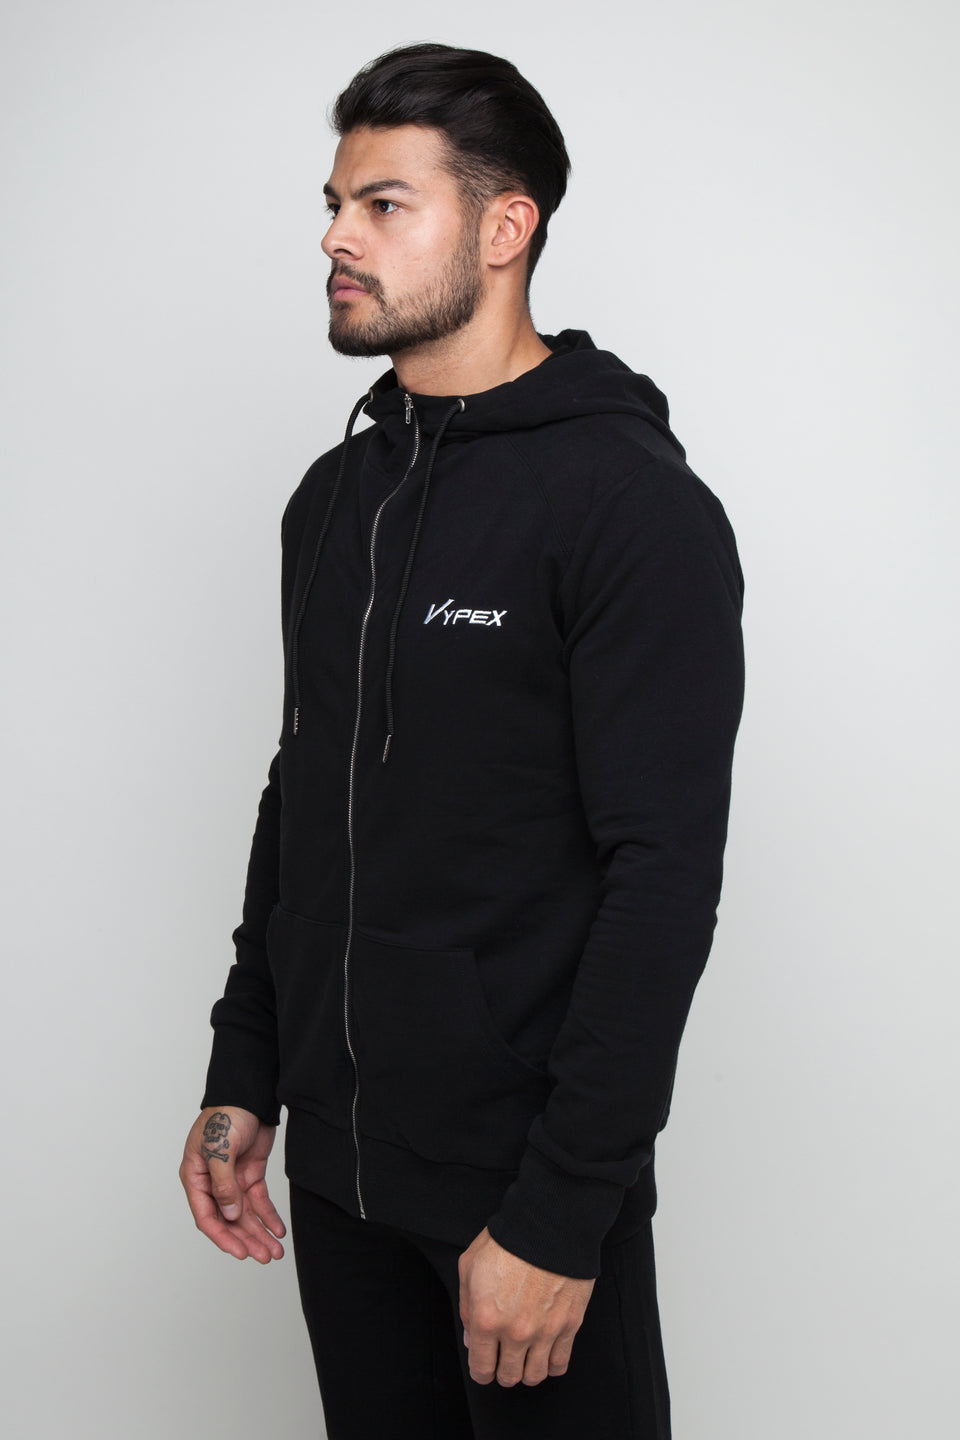 Vypex® Impression Fitted Men's Zip Up Hoodie In Carbon Black